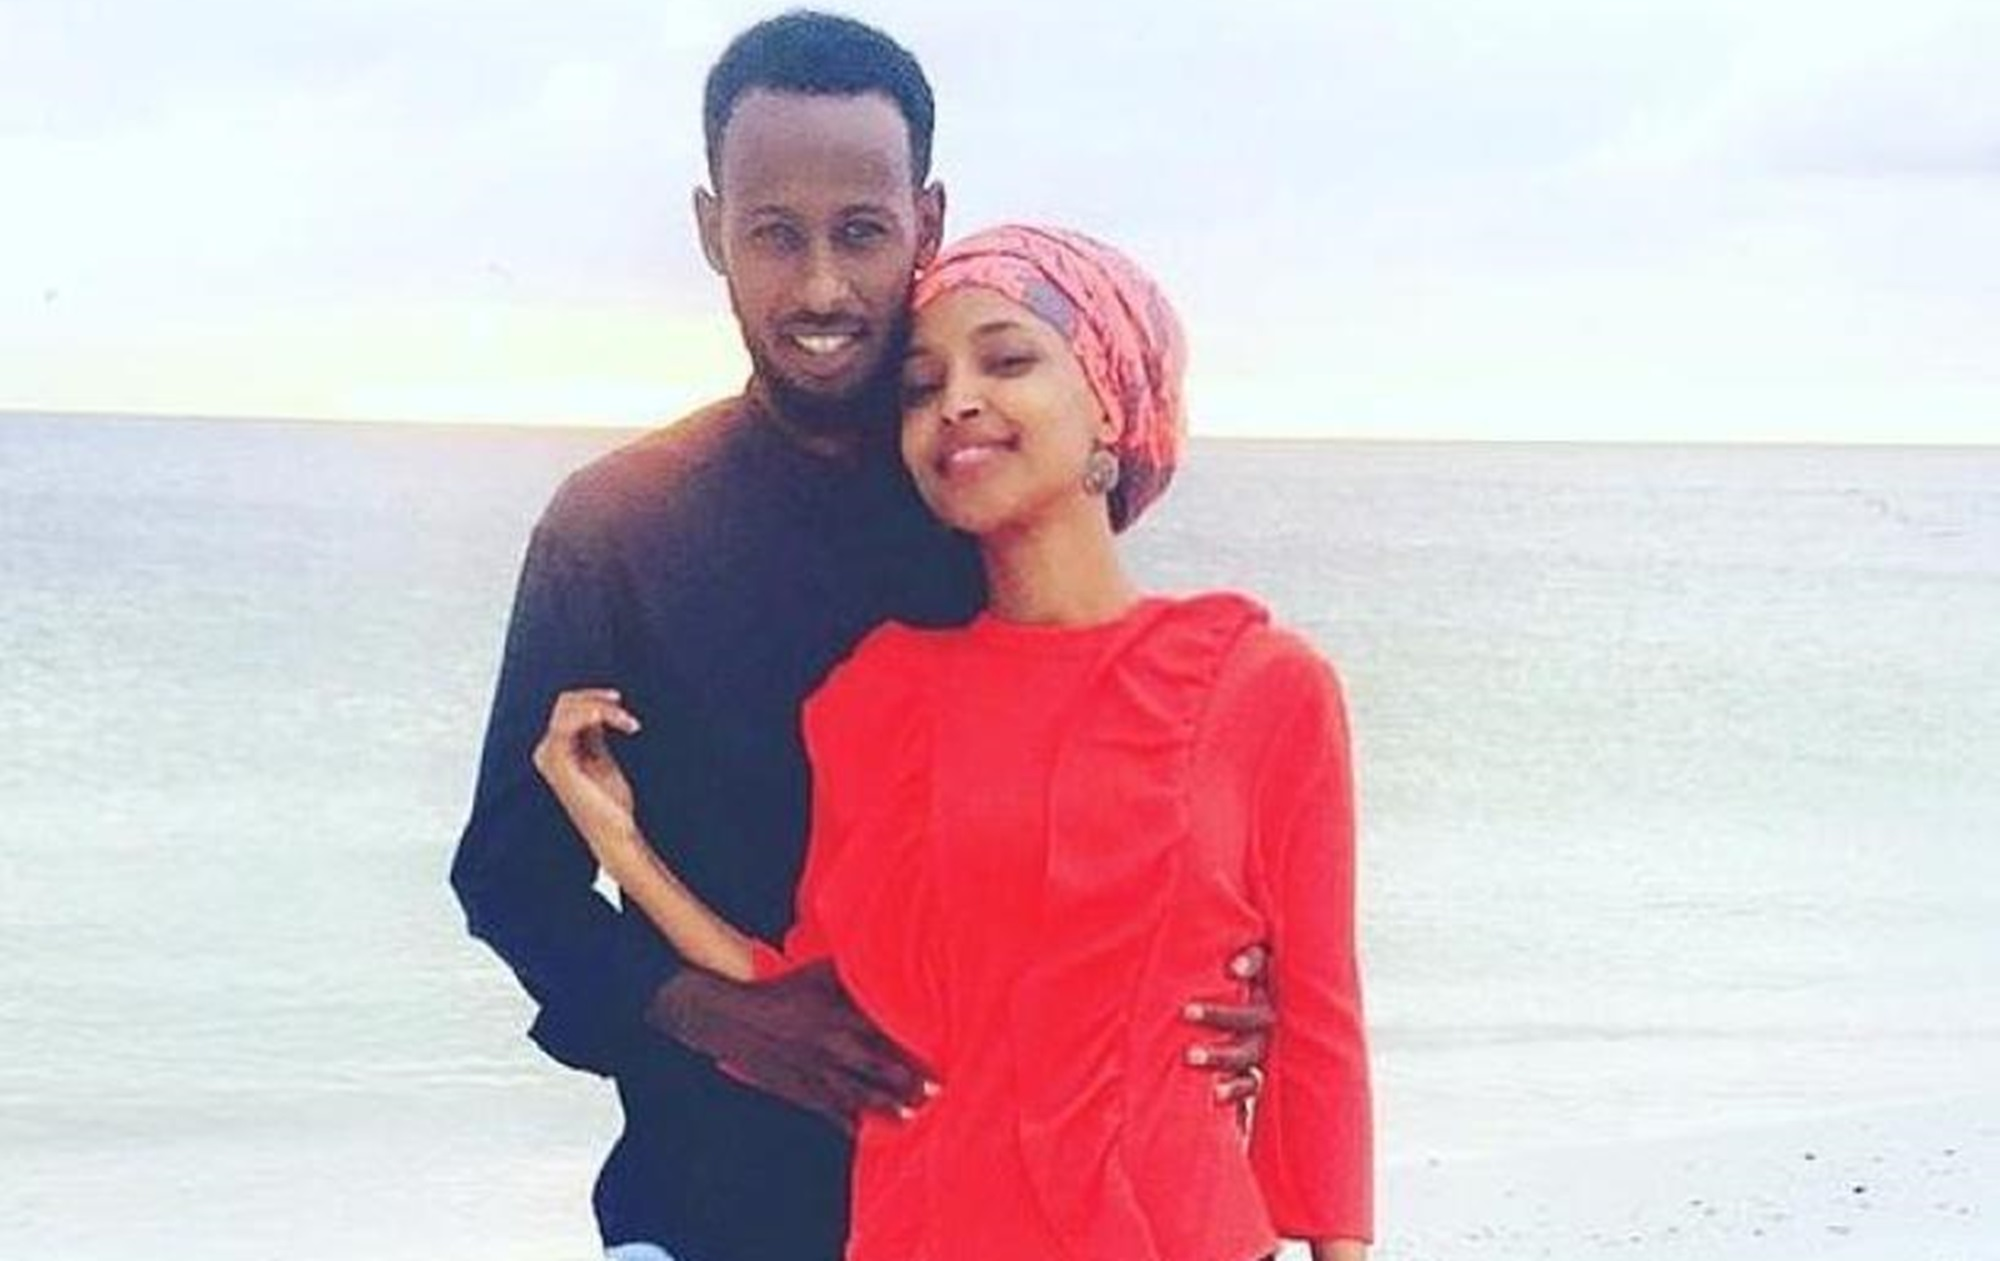 Ahmed Hirsi Ilhan Omar Divorce